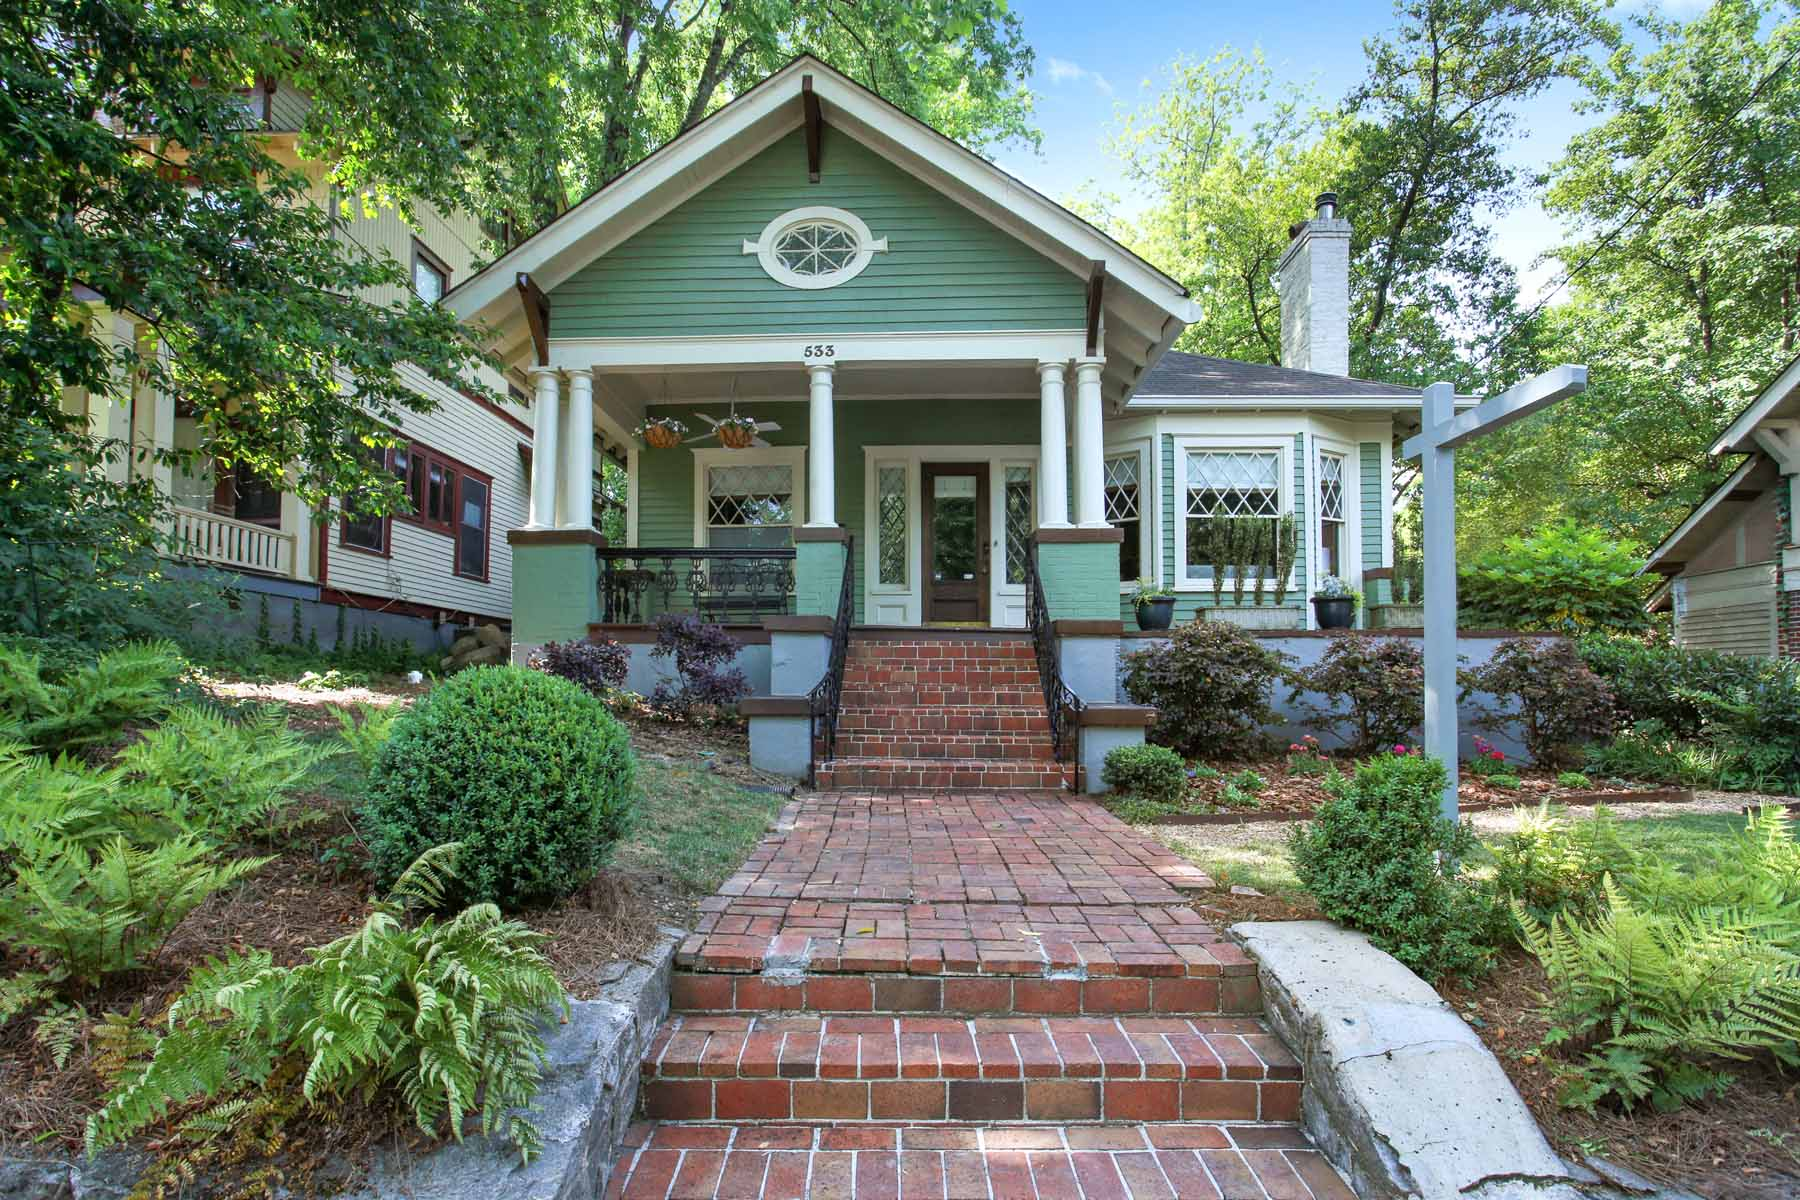 Single Family Home for Sale at Stunning Midtown Home 533 Greenwood Avenue NE Midtown, Atlanta, Georgia, 30308 United States